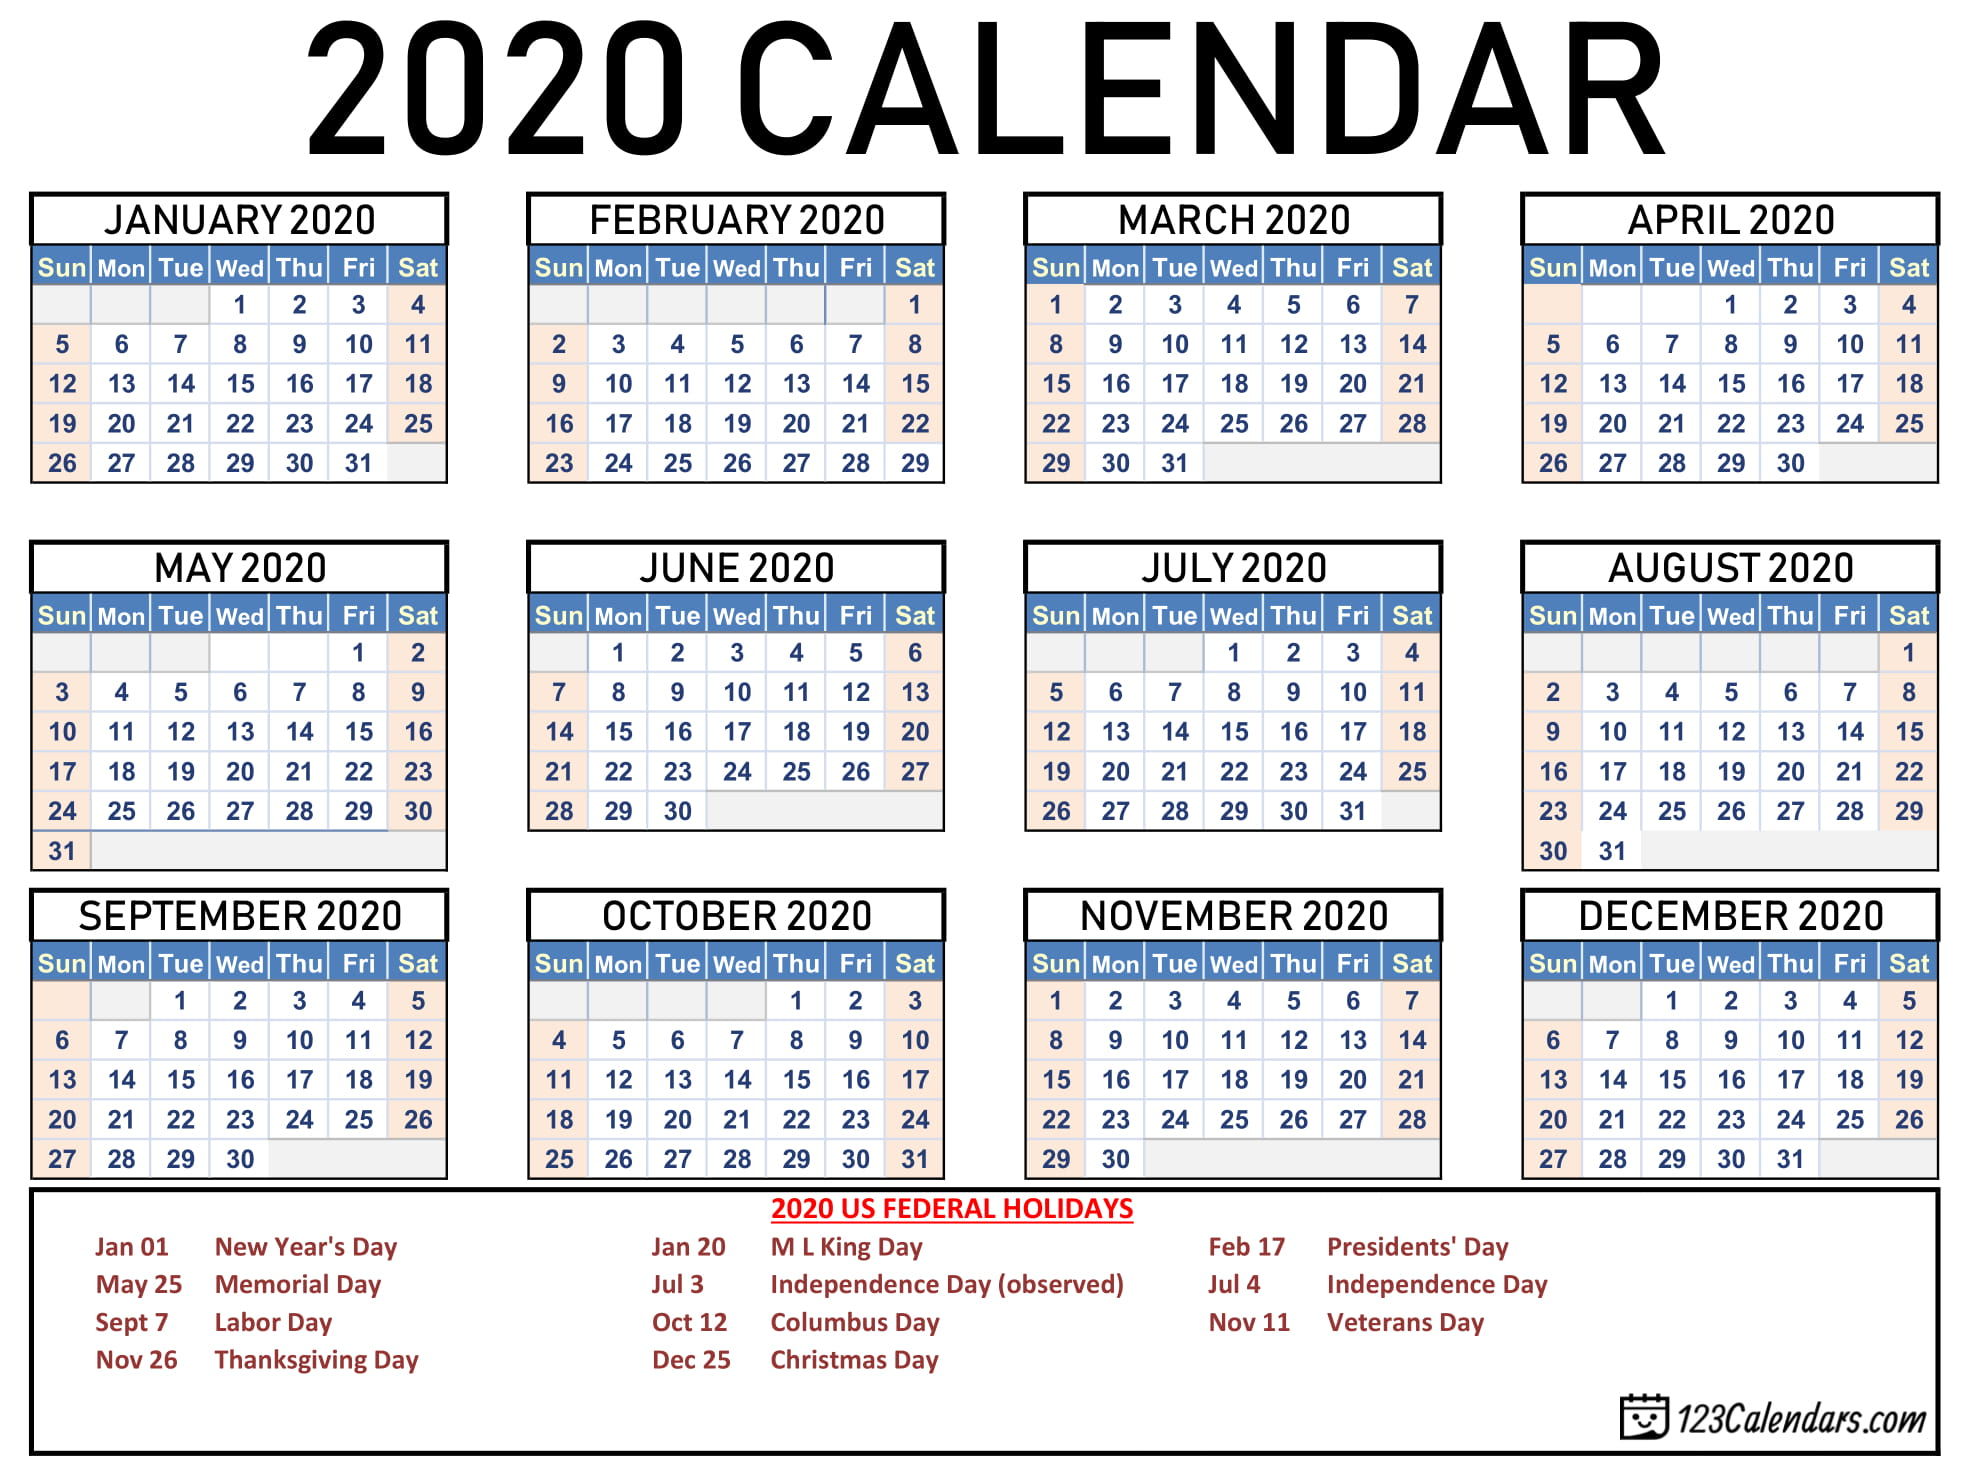 photograph relating to 2020 Calendar Printable named Free of charge Printable 2020 Calendar